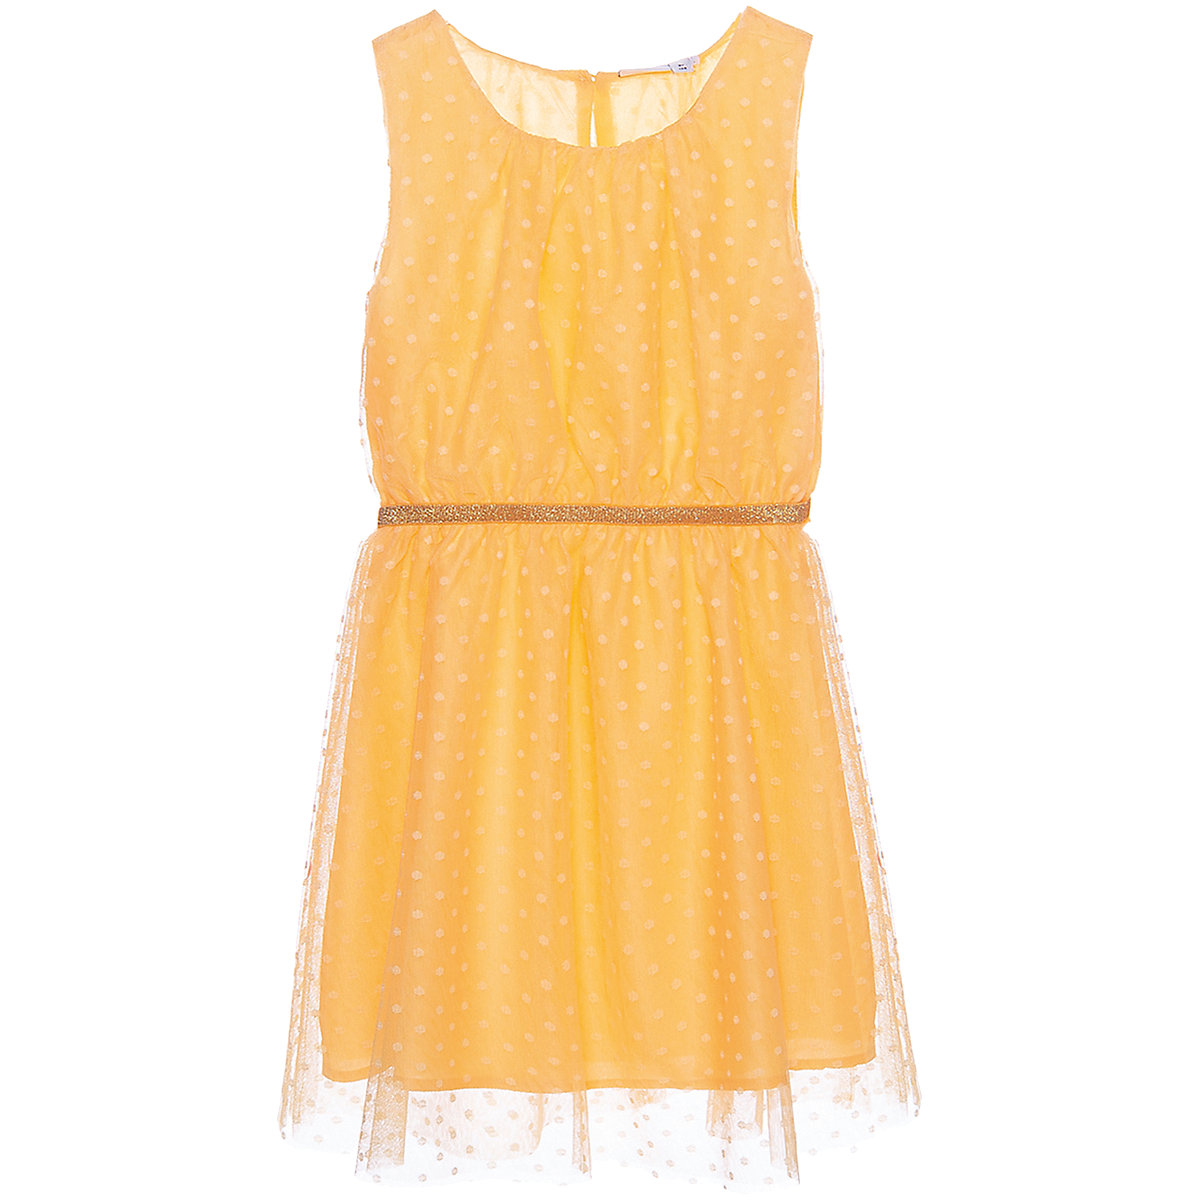 NAME IT Dresses 10623621 Dress girl children checkered pattern collar fitted silhouette sequins Polyester Casual Yellow Sleeveless Sleeve